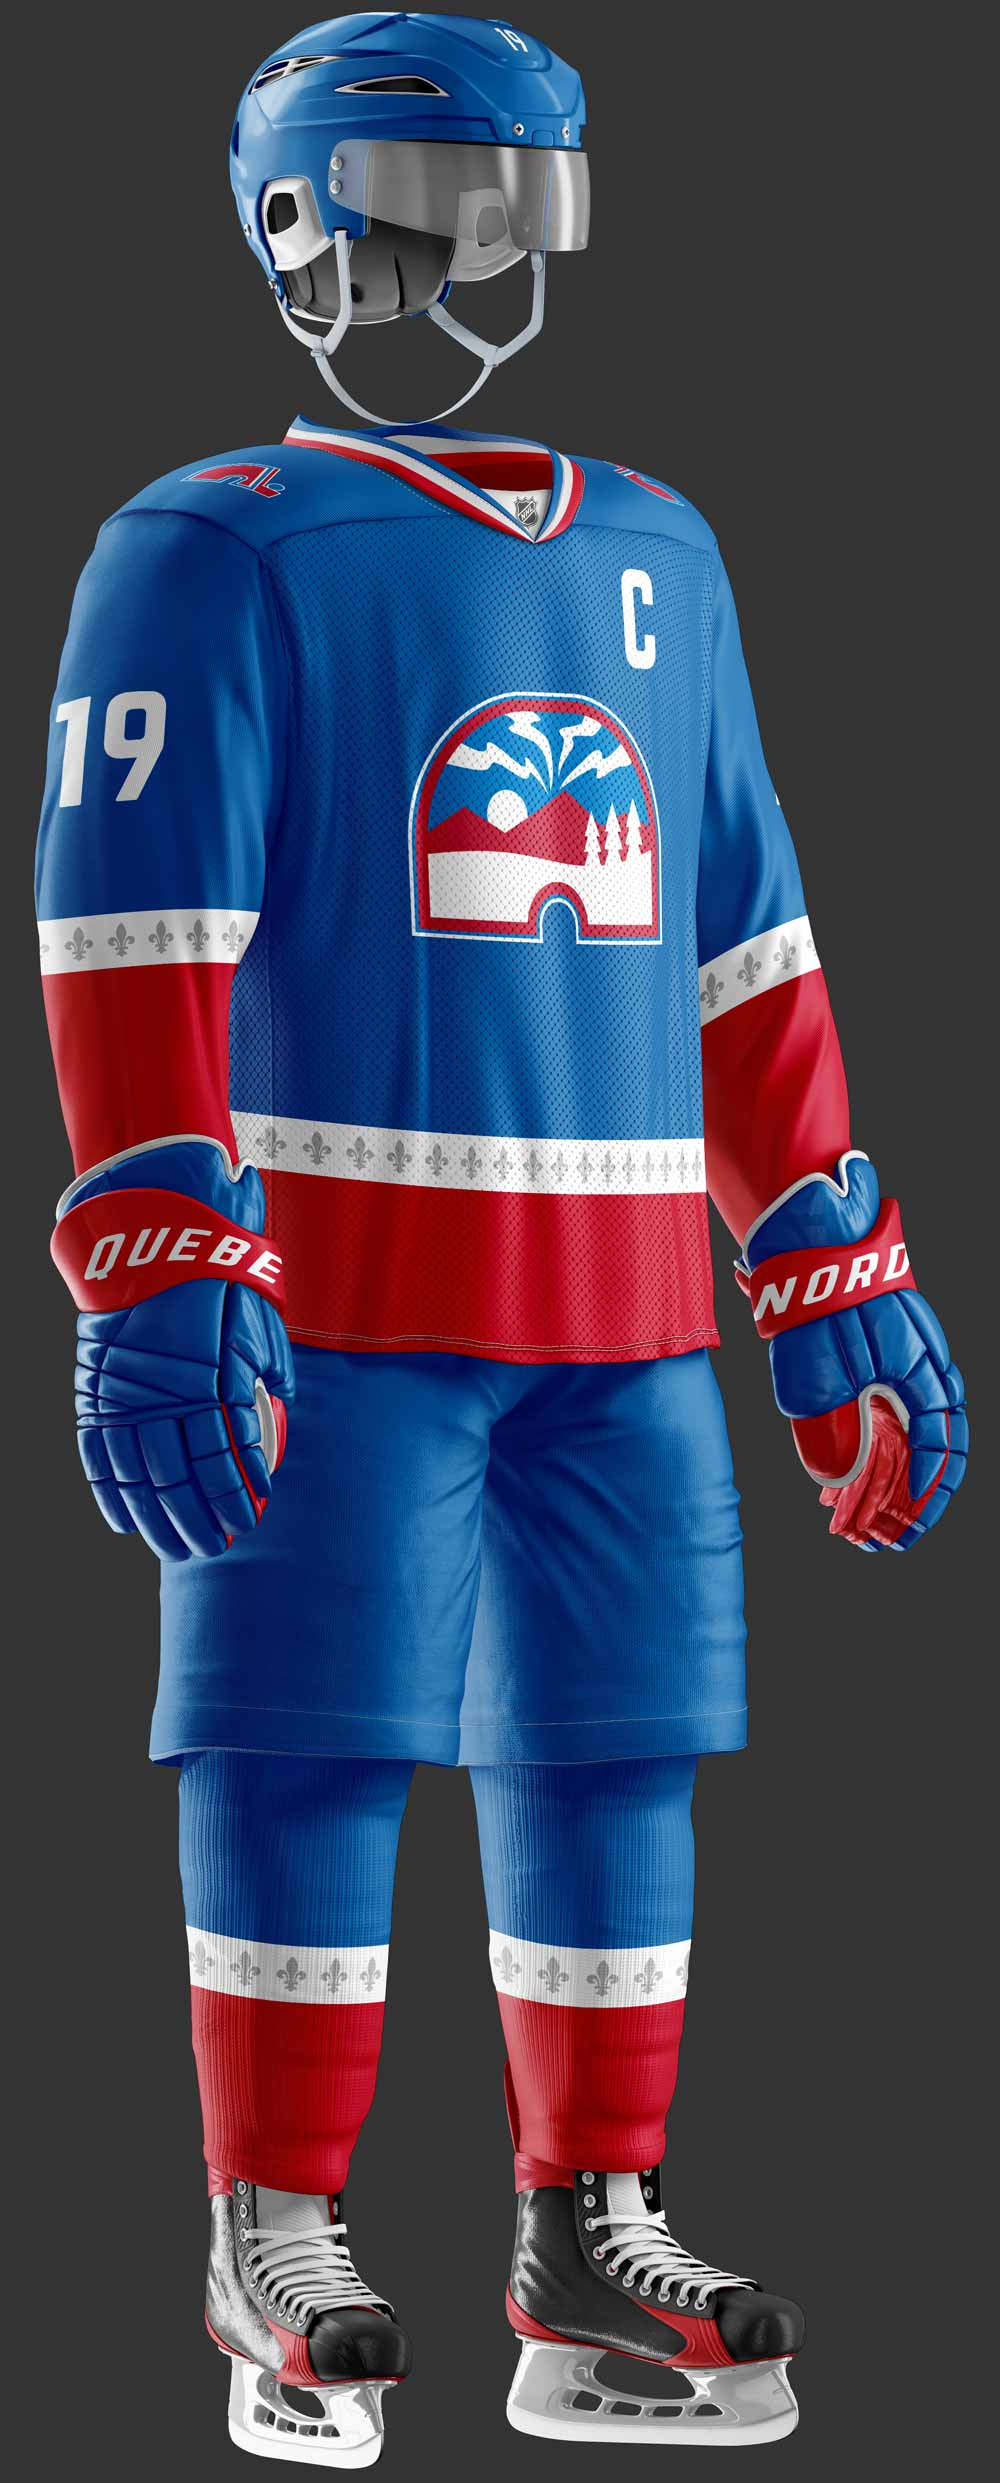 A mock up of the new Québec Nordiques jersey design.